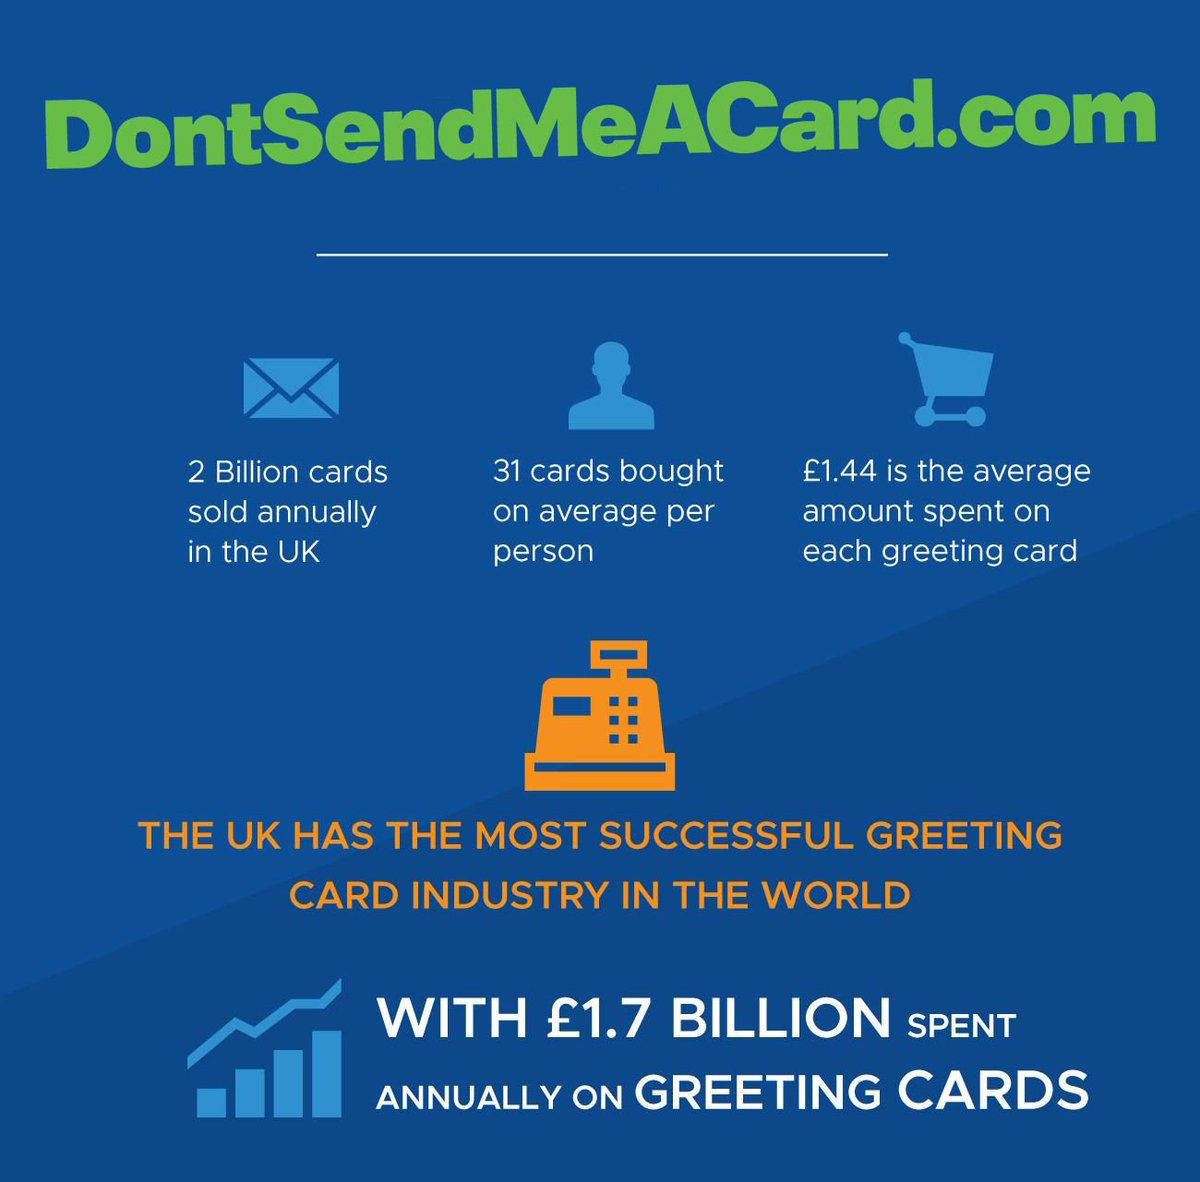 To Send Electronic Cards And Make A Donation Charity Instead Visit Dontsendmeacard Charities EW9m Get Started